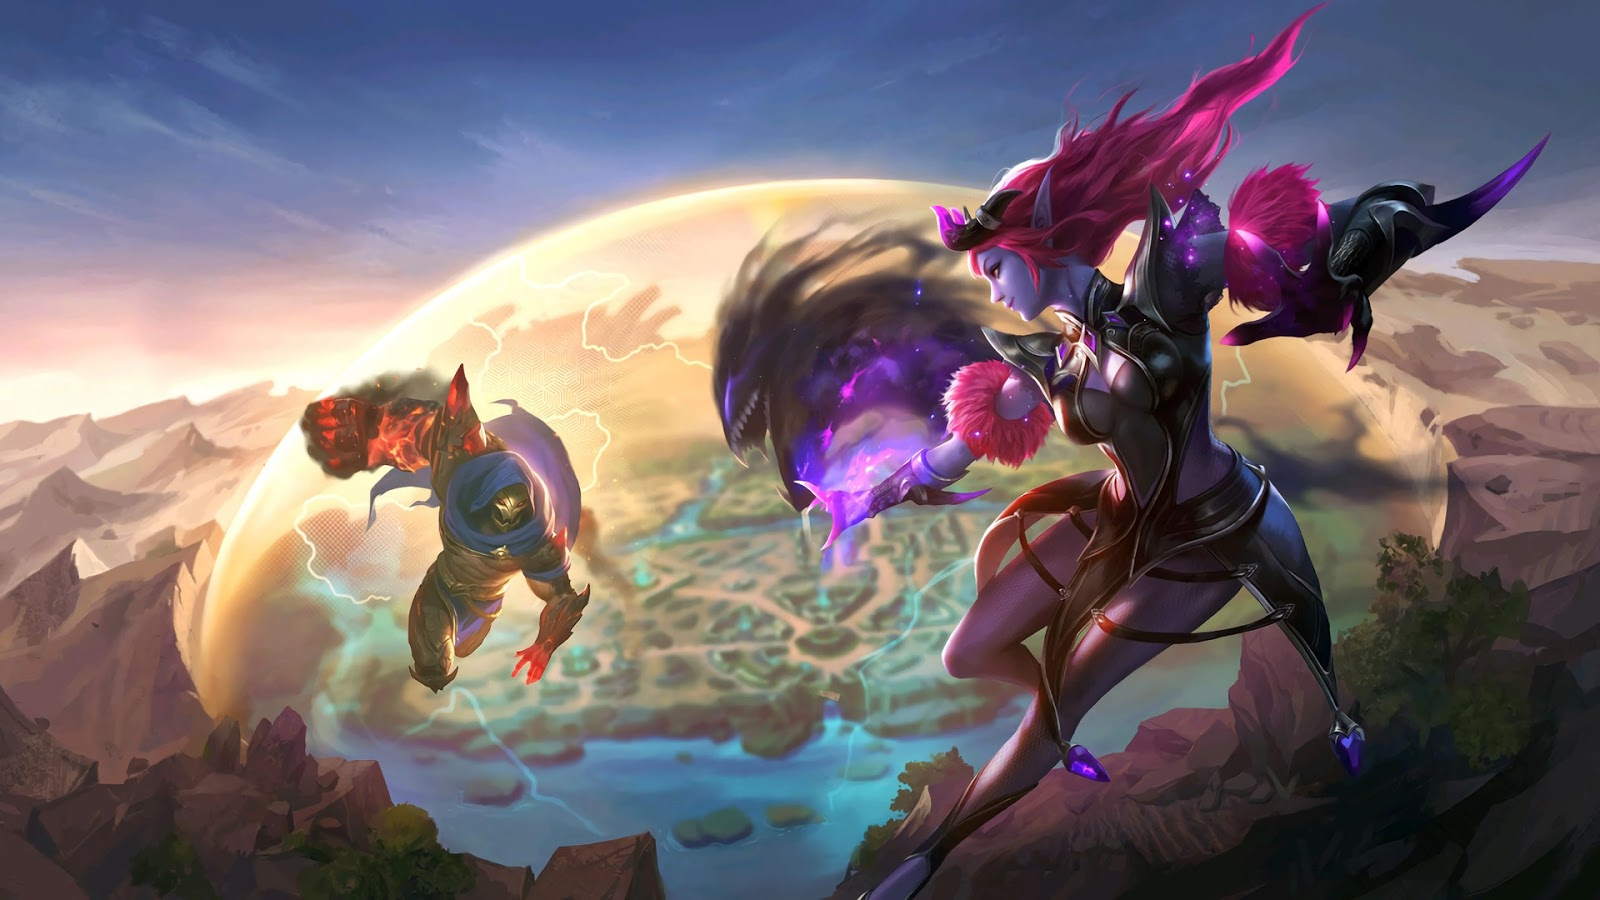 Wallpaper Selena and Aldous Skin Mobile Legends HD for PC